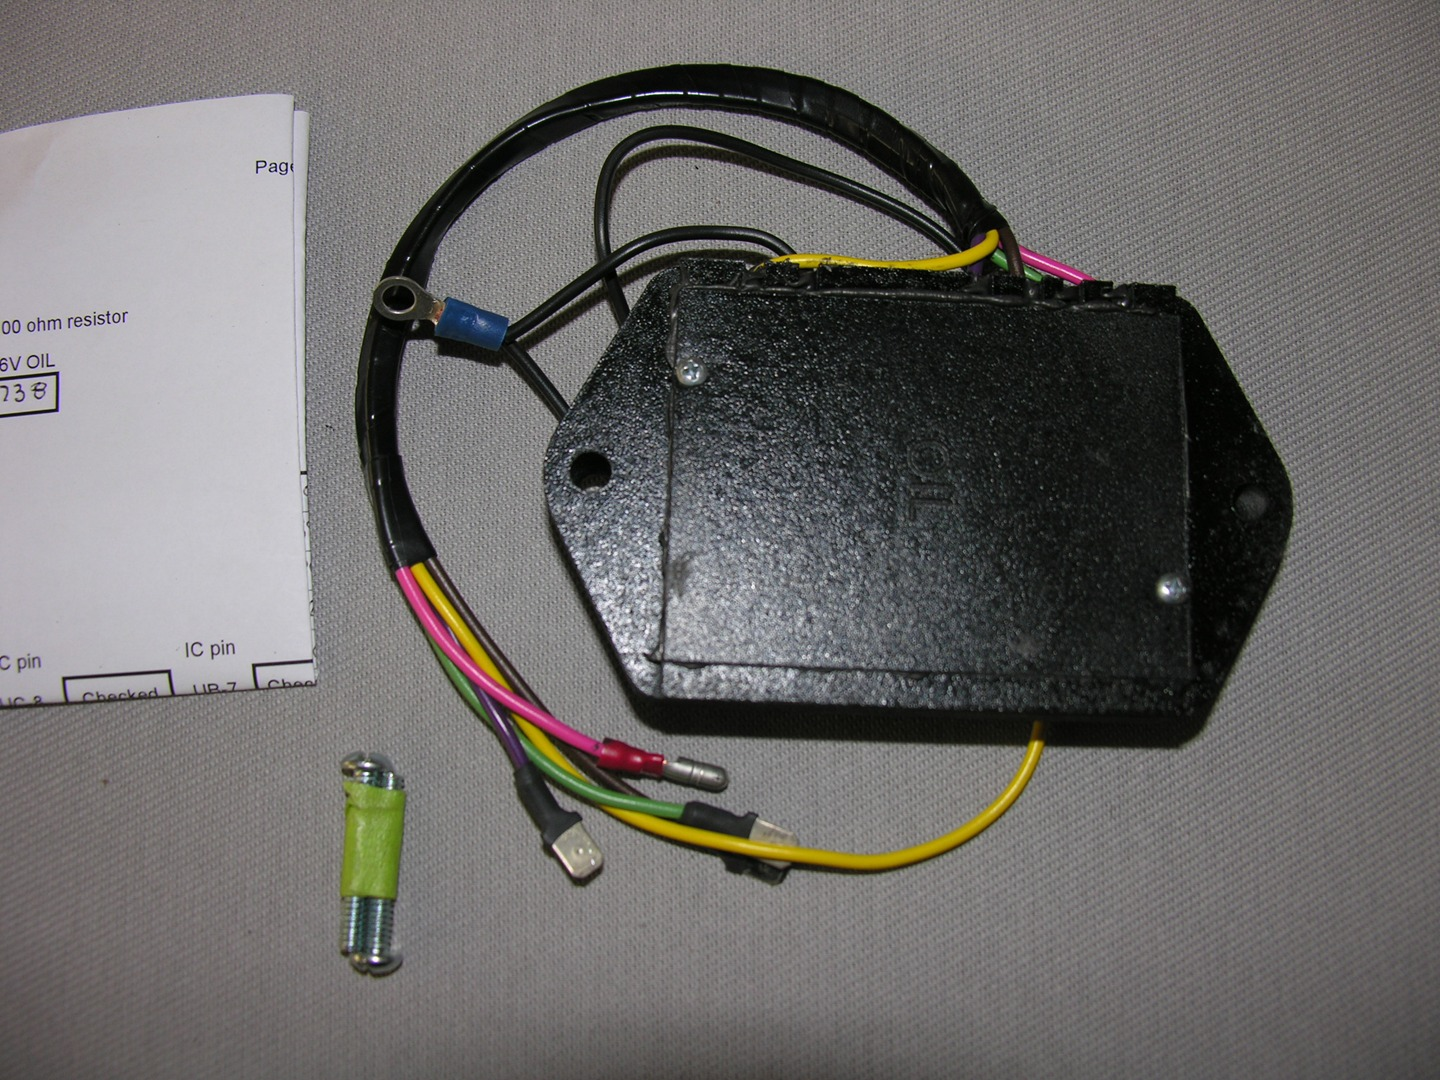 Oil Pressure Sending Unit System Custom Made Wiring Harness Kits With This Board Case And Wire It Installs Plugs Into The Original Brougham Replaces 1508566